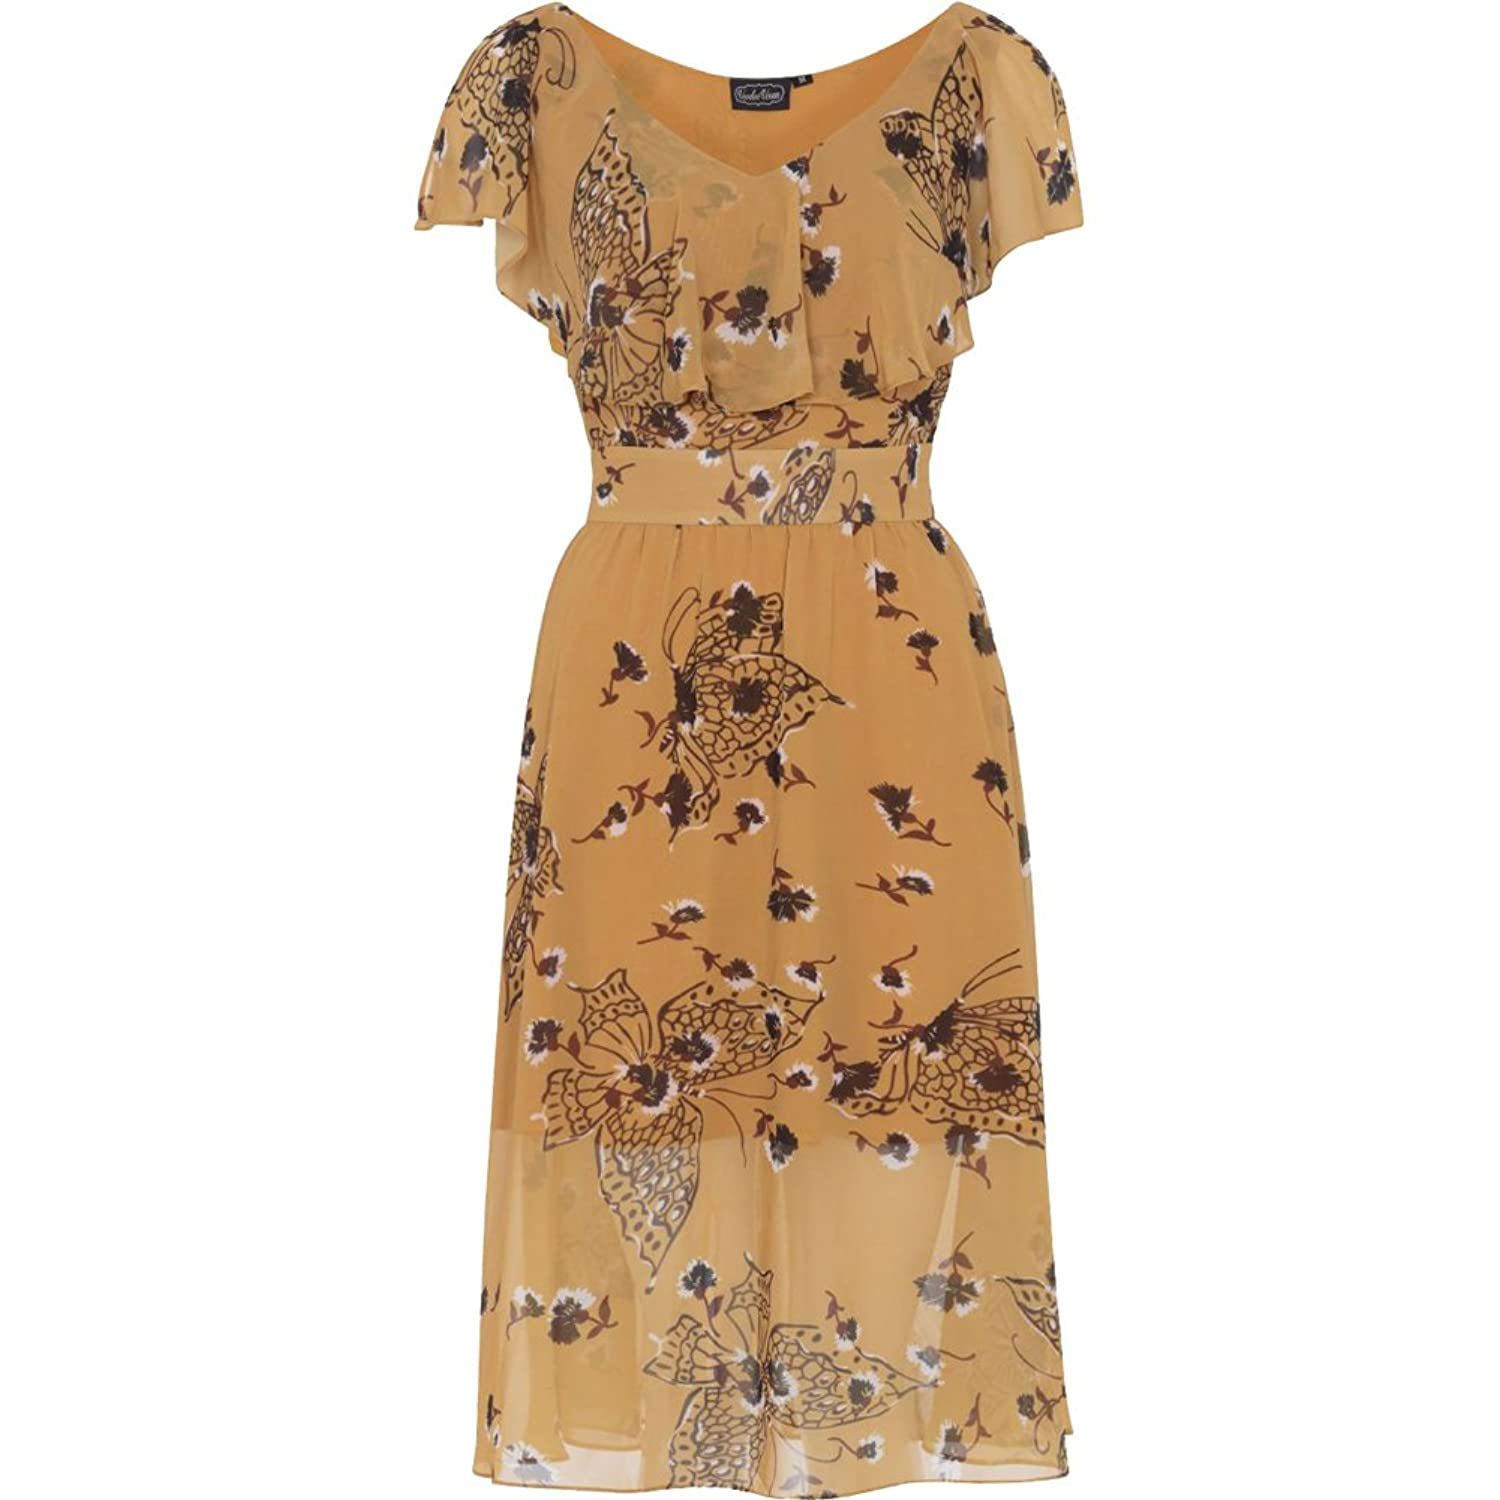 Pin Up Dresses | Pin Up Clothing Voodoo Vixen Posy Butterfly Dress Yellow $72.99 AT vintagedancer.com